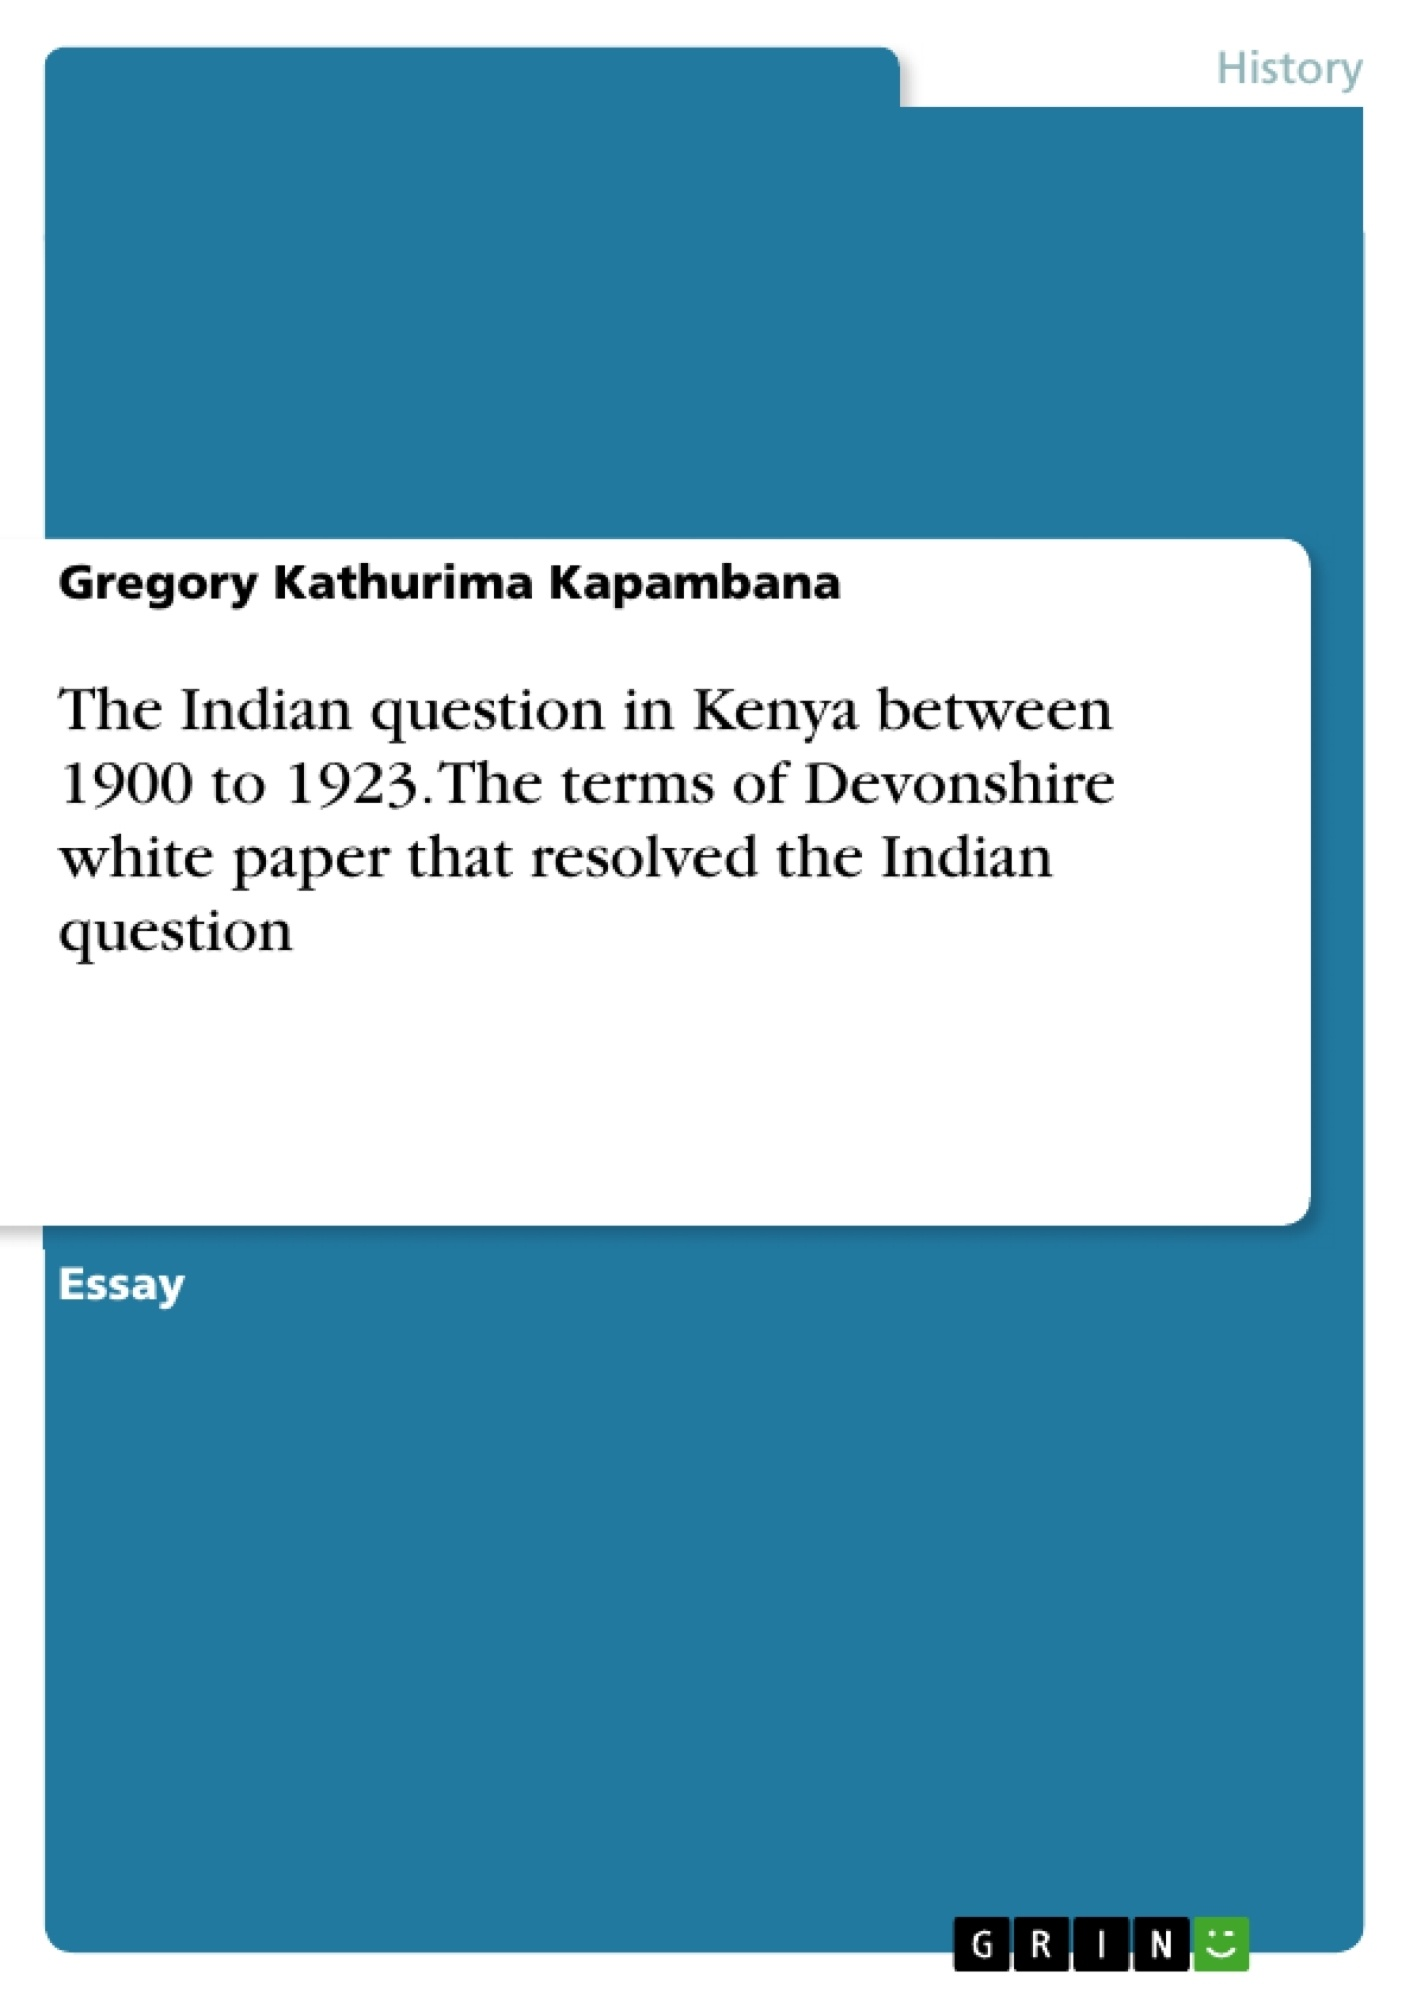 Title: The Indian question in Kenya between 1900 to 1923. The terms of Devonshire white paper that resolved the Indian question